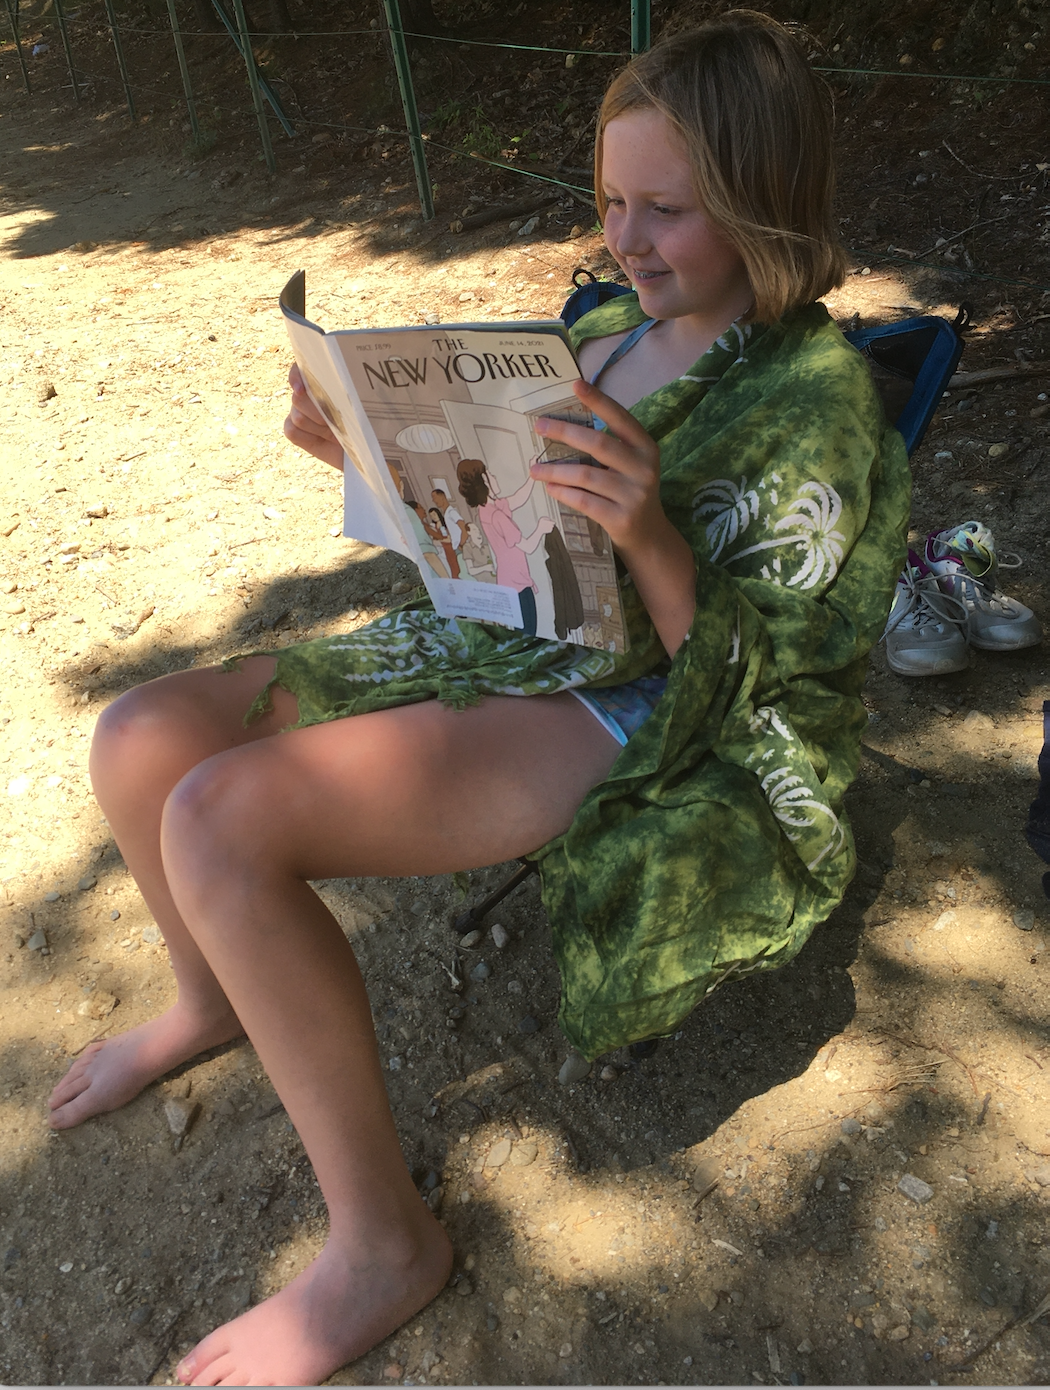 Eleven-year-old reading The New Yorker at Walden Pond